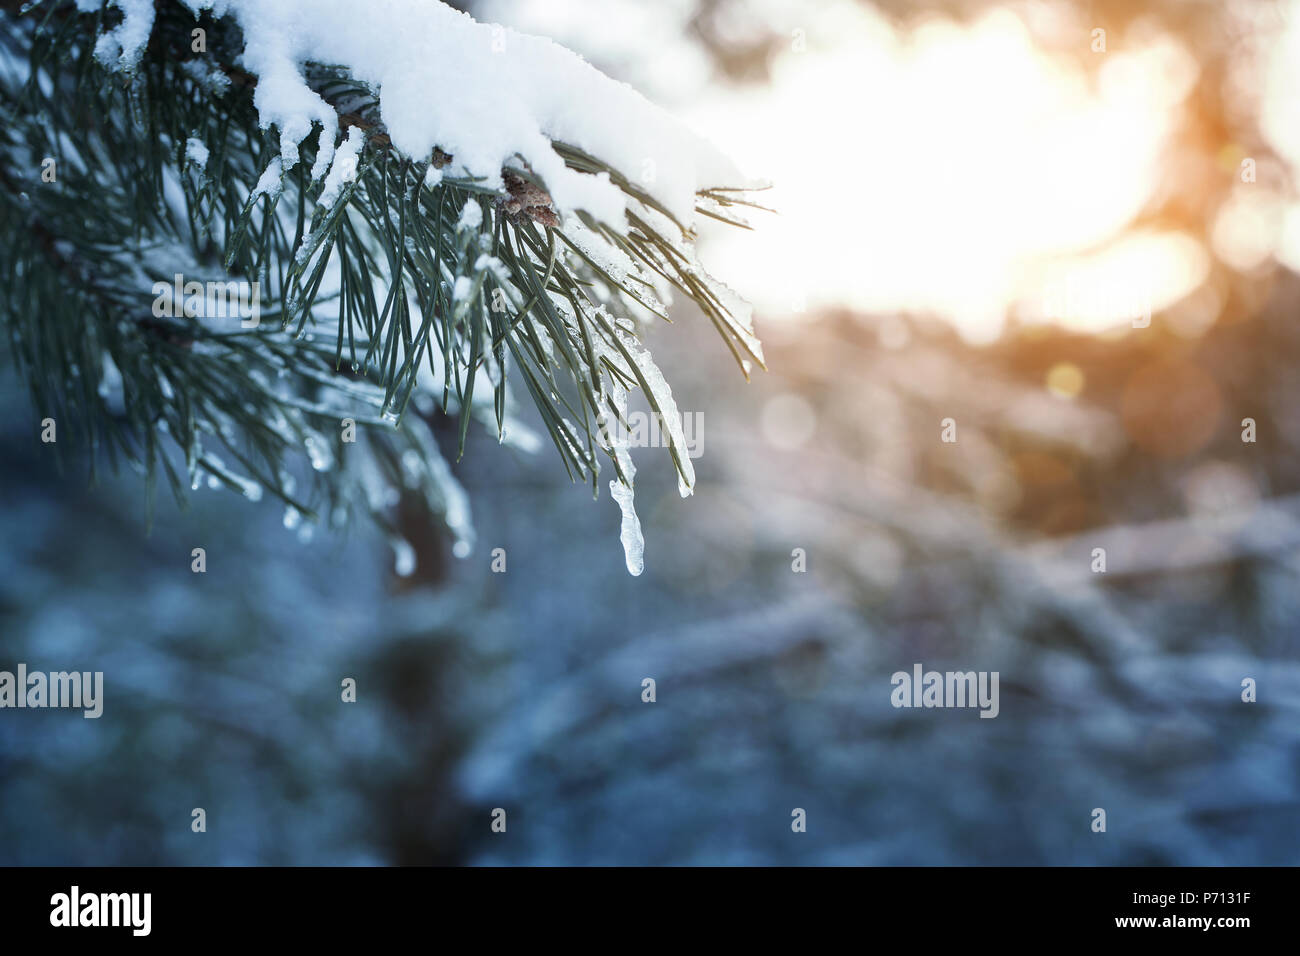 Winter background, close up of frosted branch on a snowy day with copy space - Stock Image